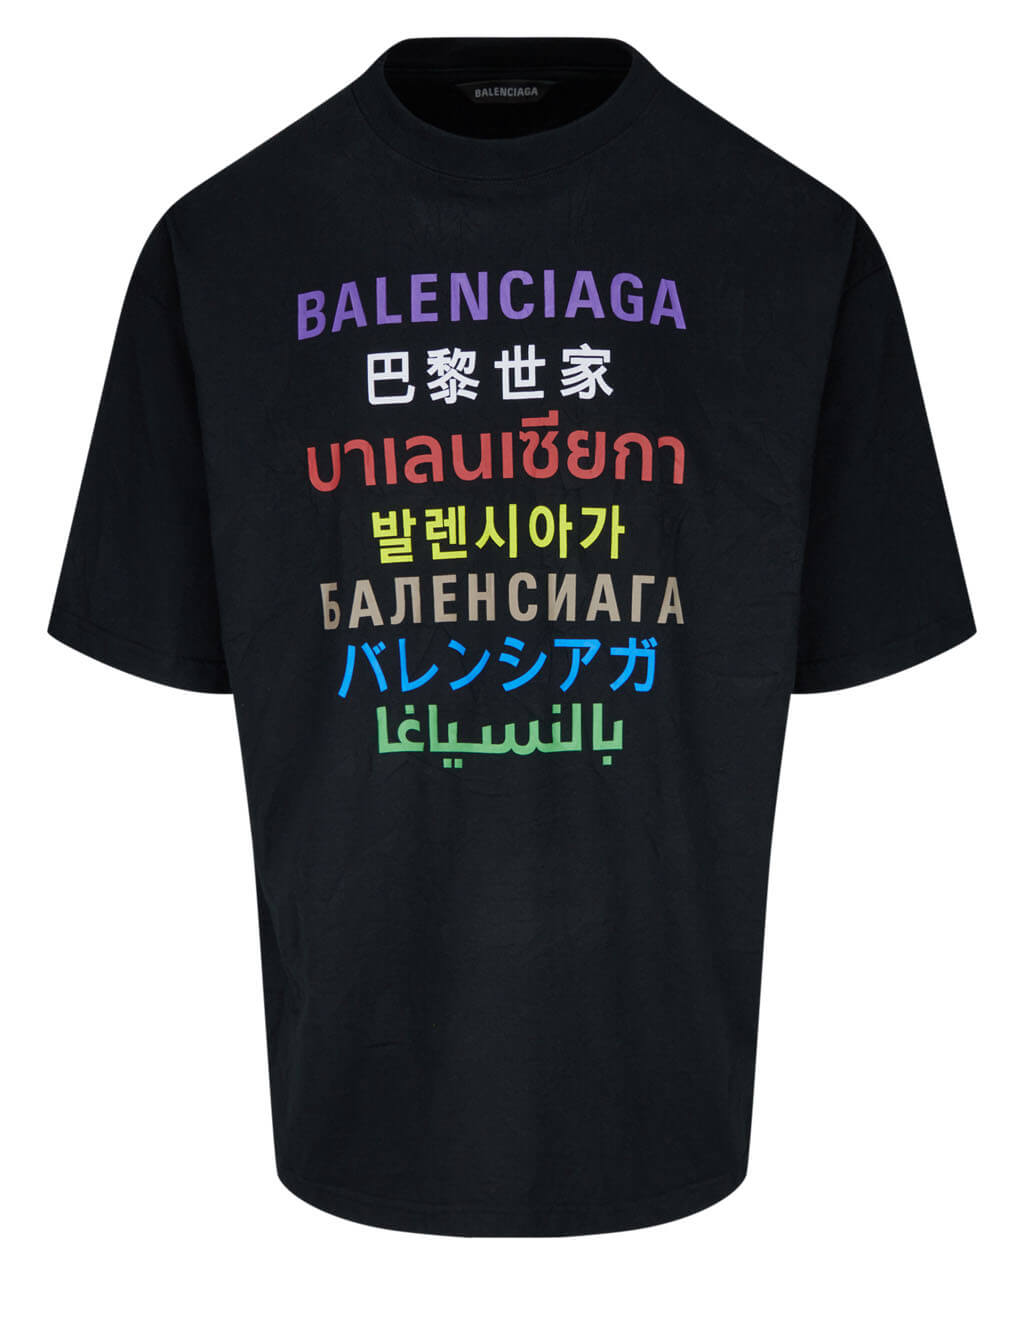 Men's Balenciaga Languages Print Medium Fit T-Shirt in Black/Multicolour - 612966TJVI32771